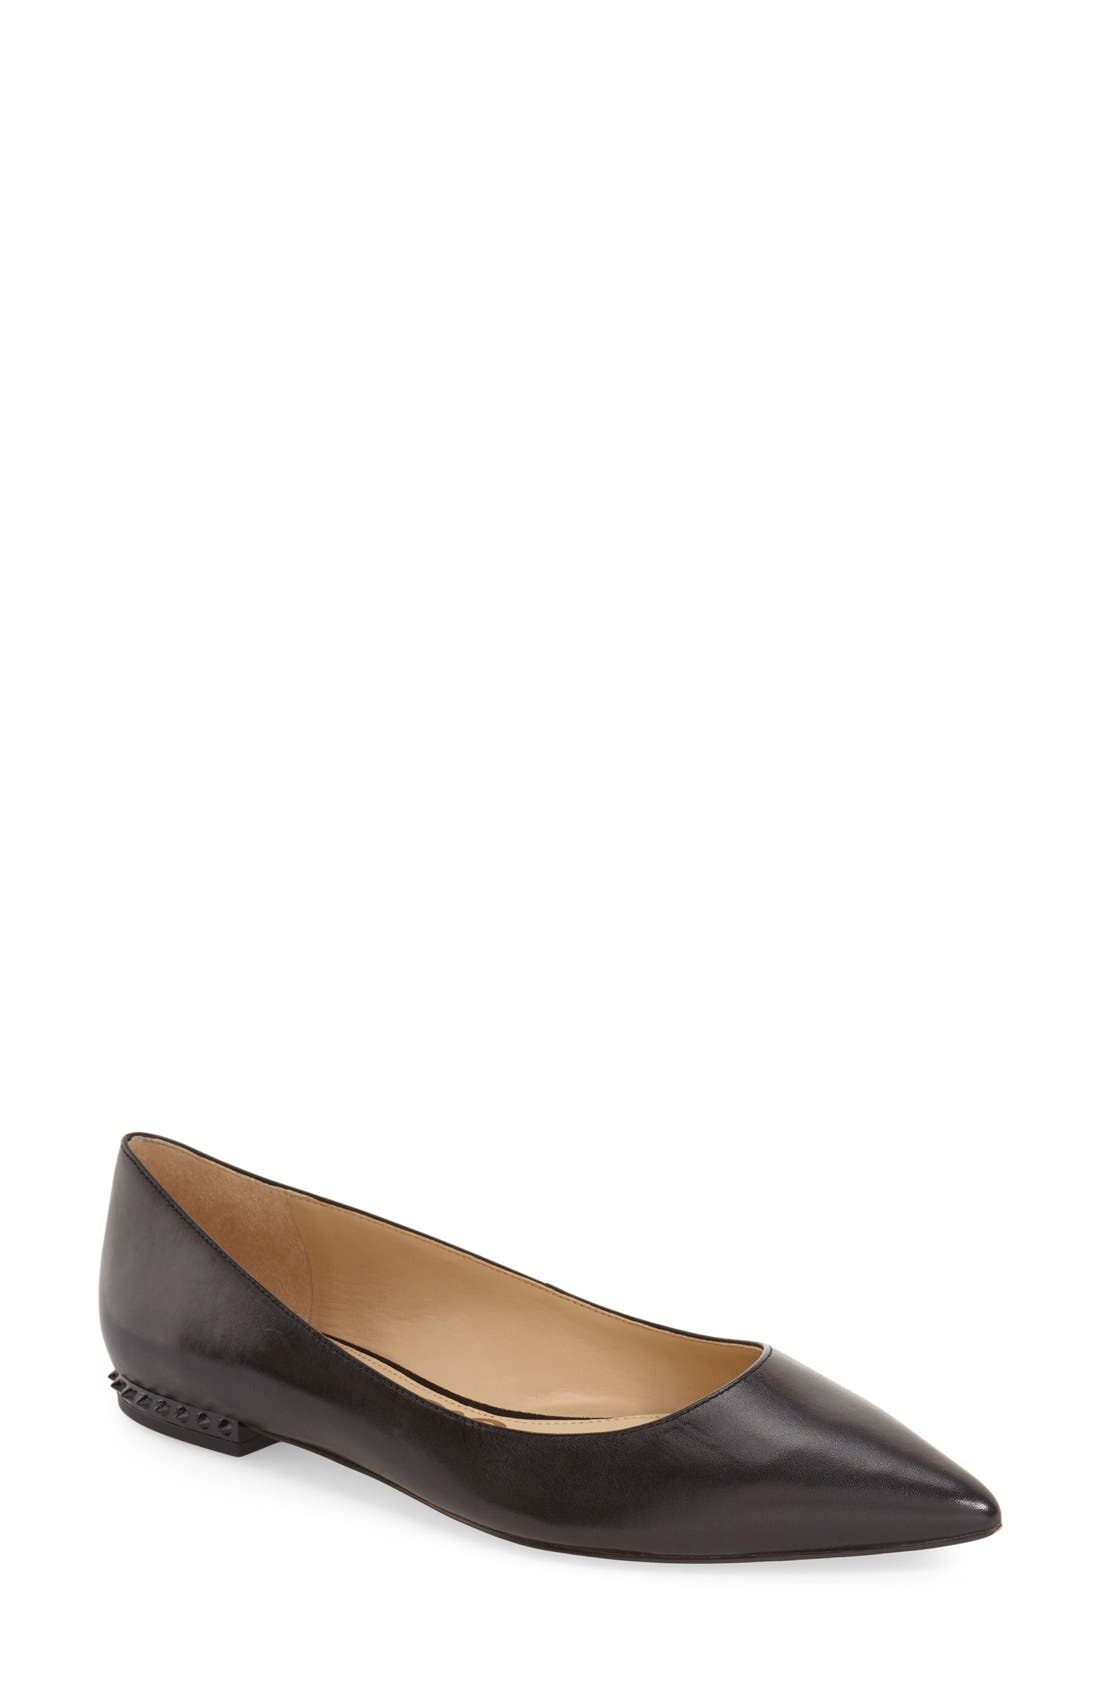 SAM EDELMAN 'Reyanne' Spike Rand Pointy Toe Flat, Main, color, 001